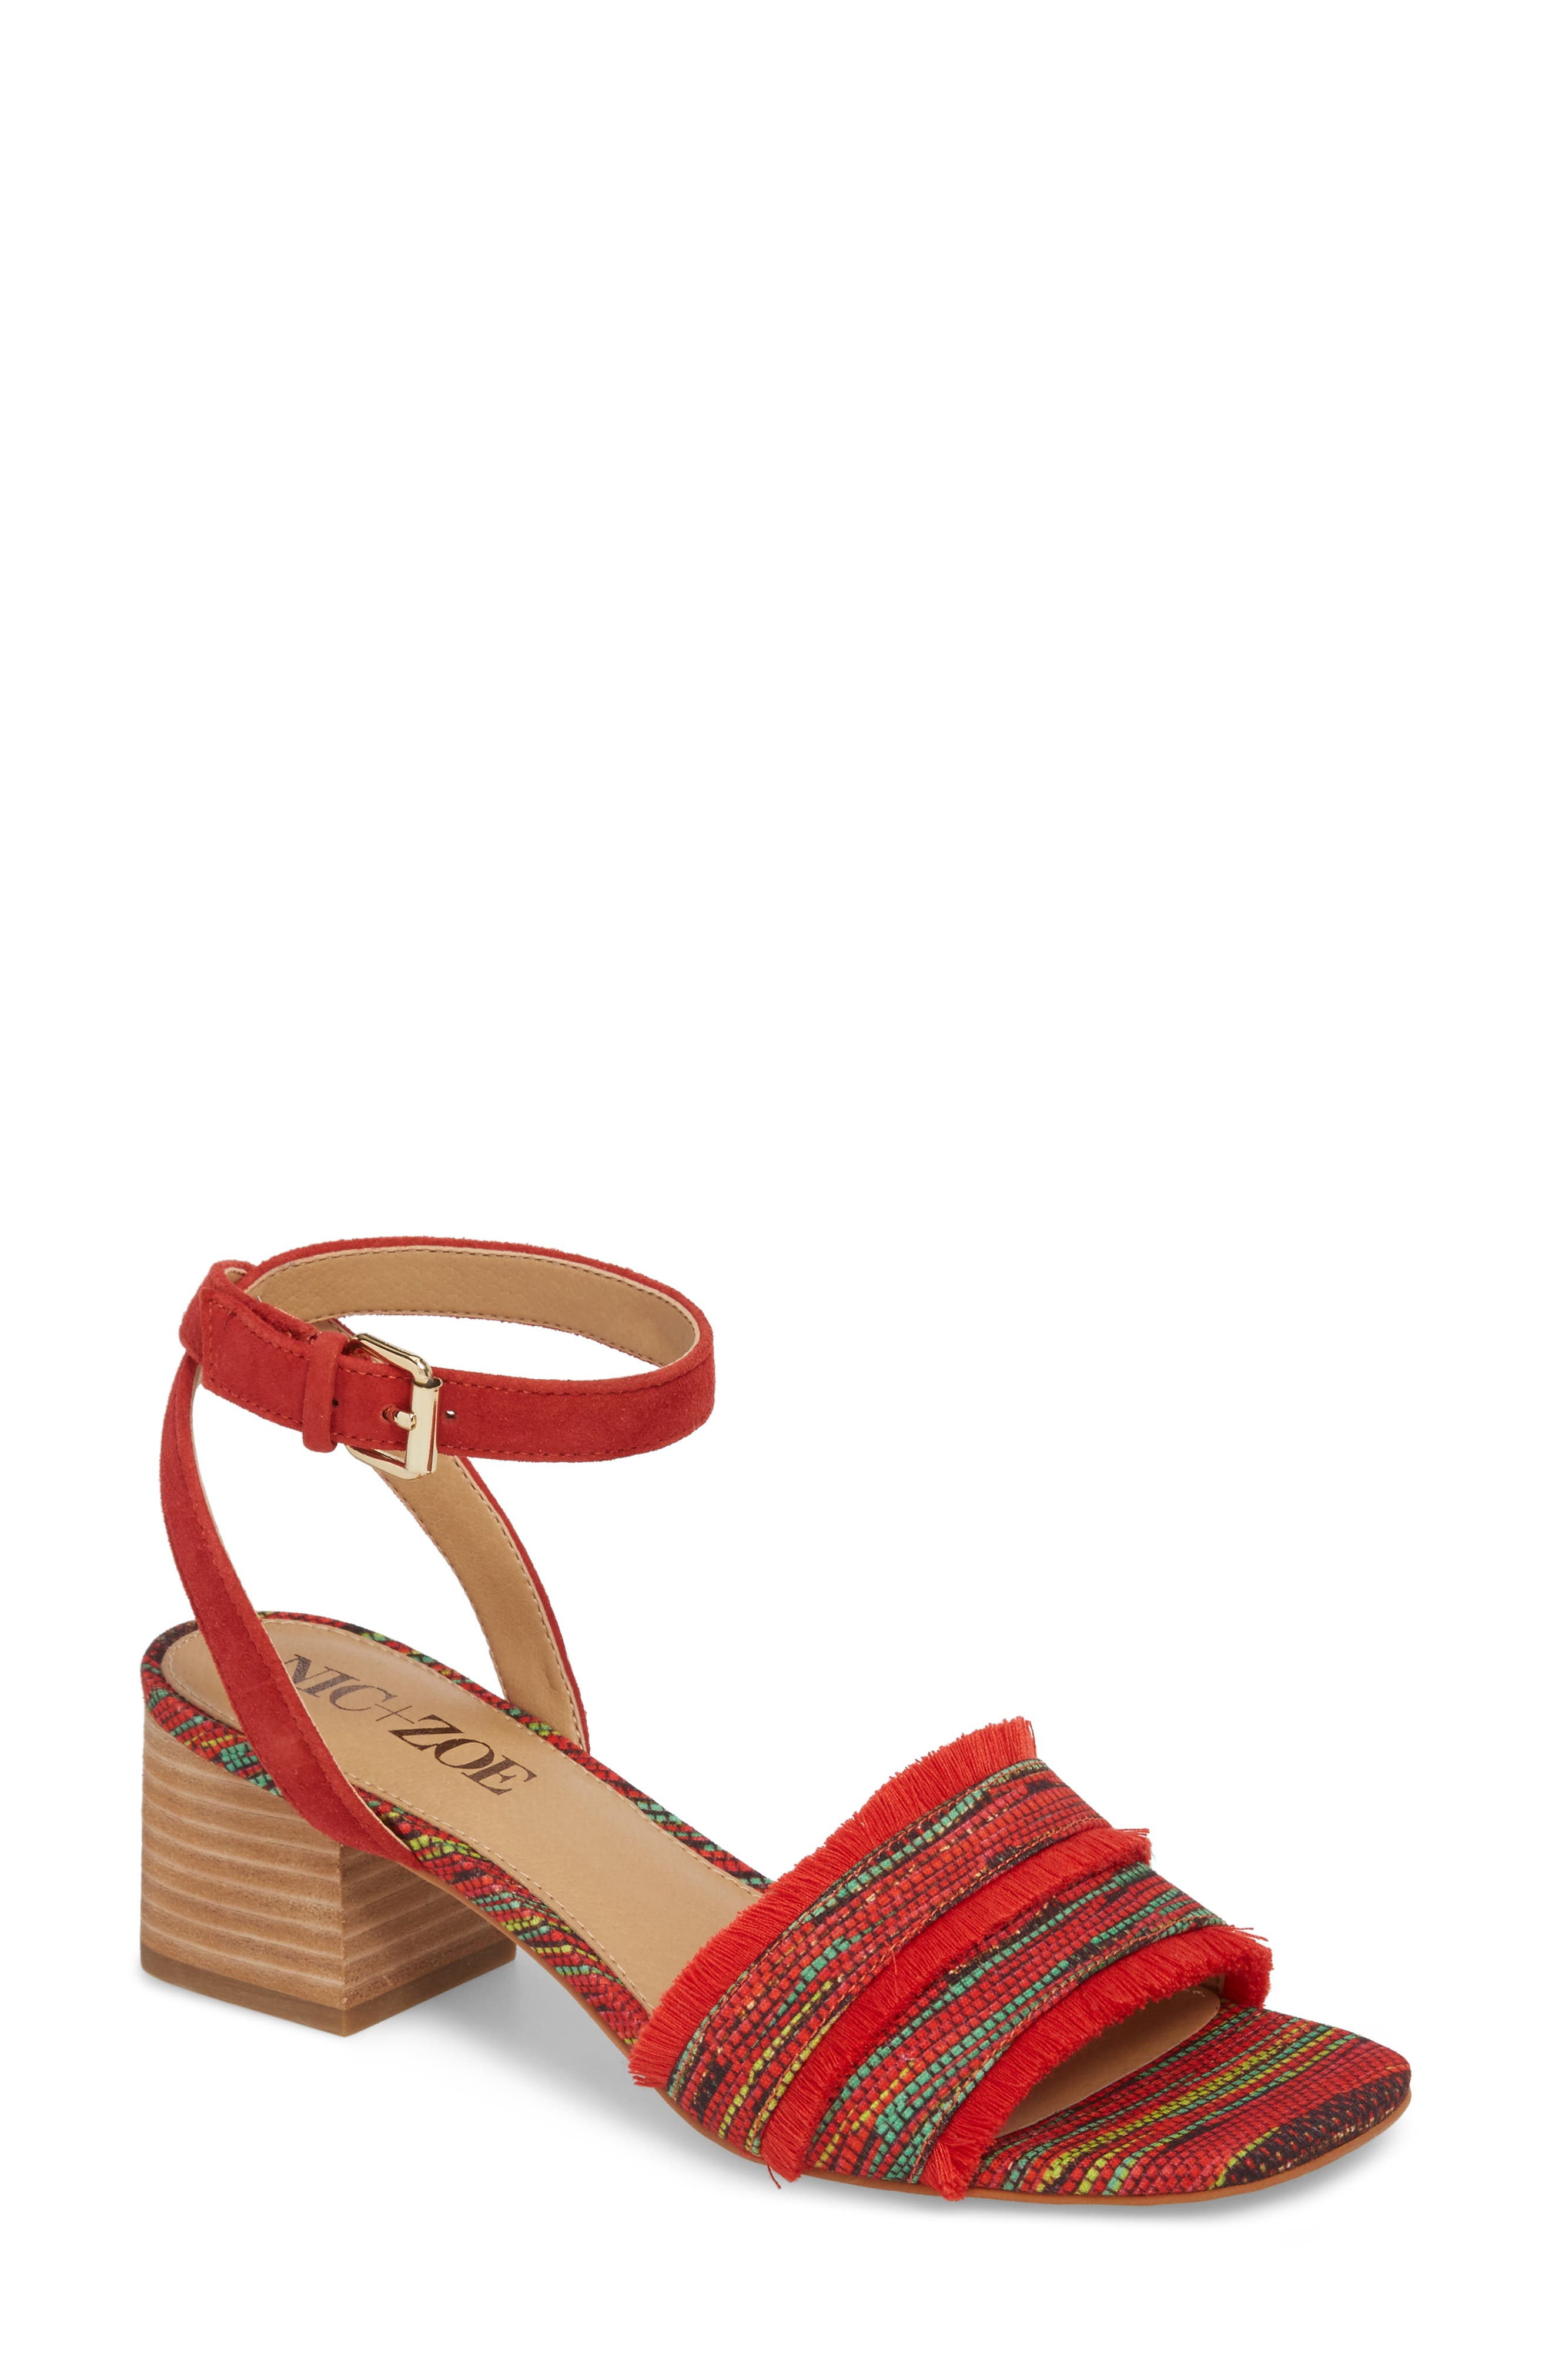 Zaria Fringed Sandal,                         Main,                         color, Red Multi Fabric